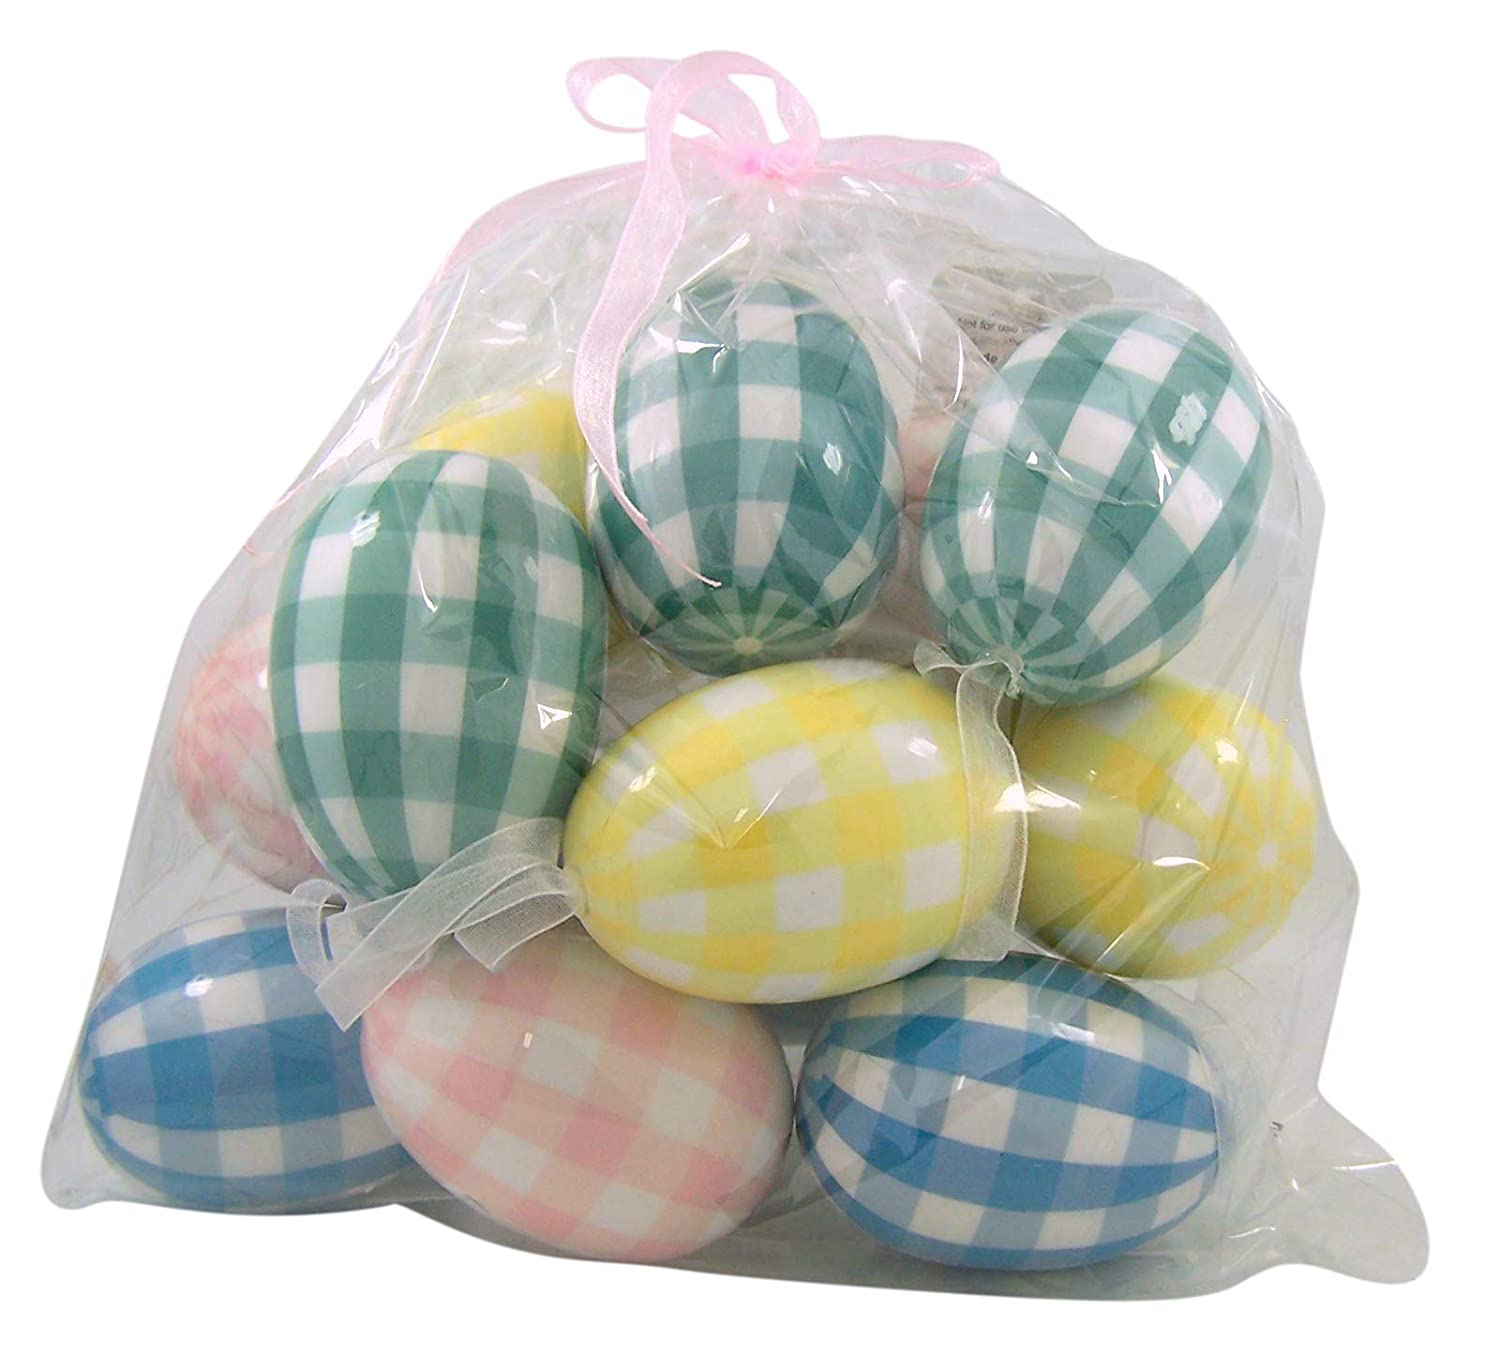 Pastel Colored Checked Styrofoam Easter Egg Ornaments Pack of 12 Raz Imports